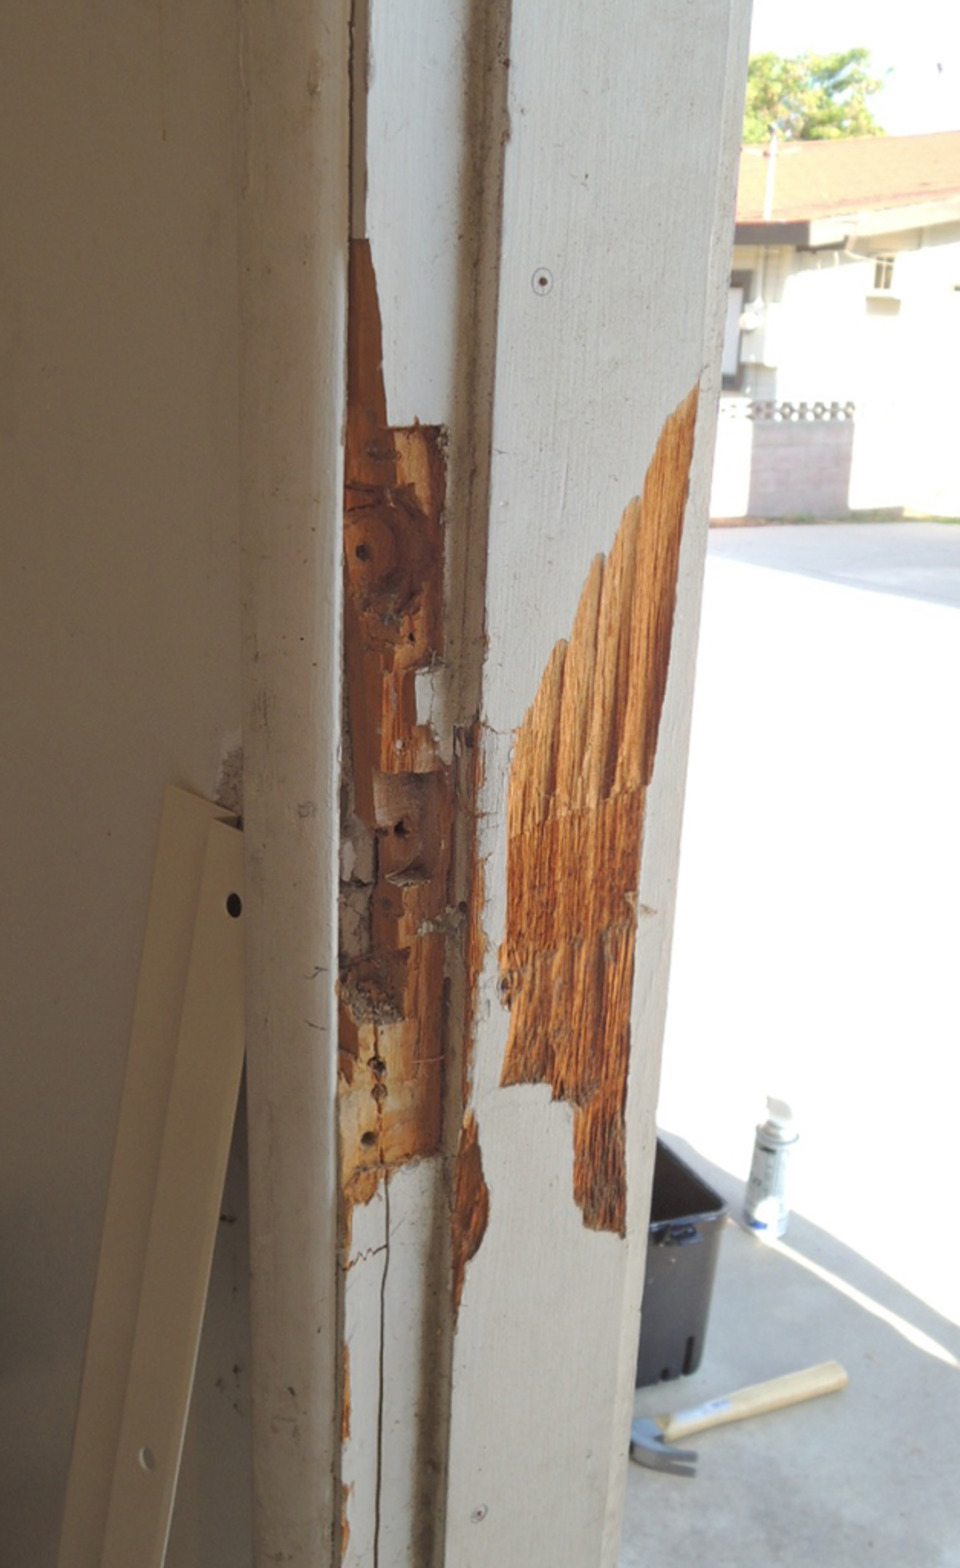 Doors Jambs: Jamb Jacket Strengthens Broken DoorJambs